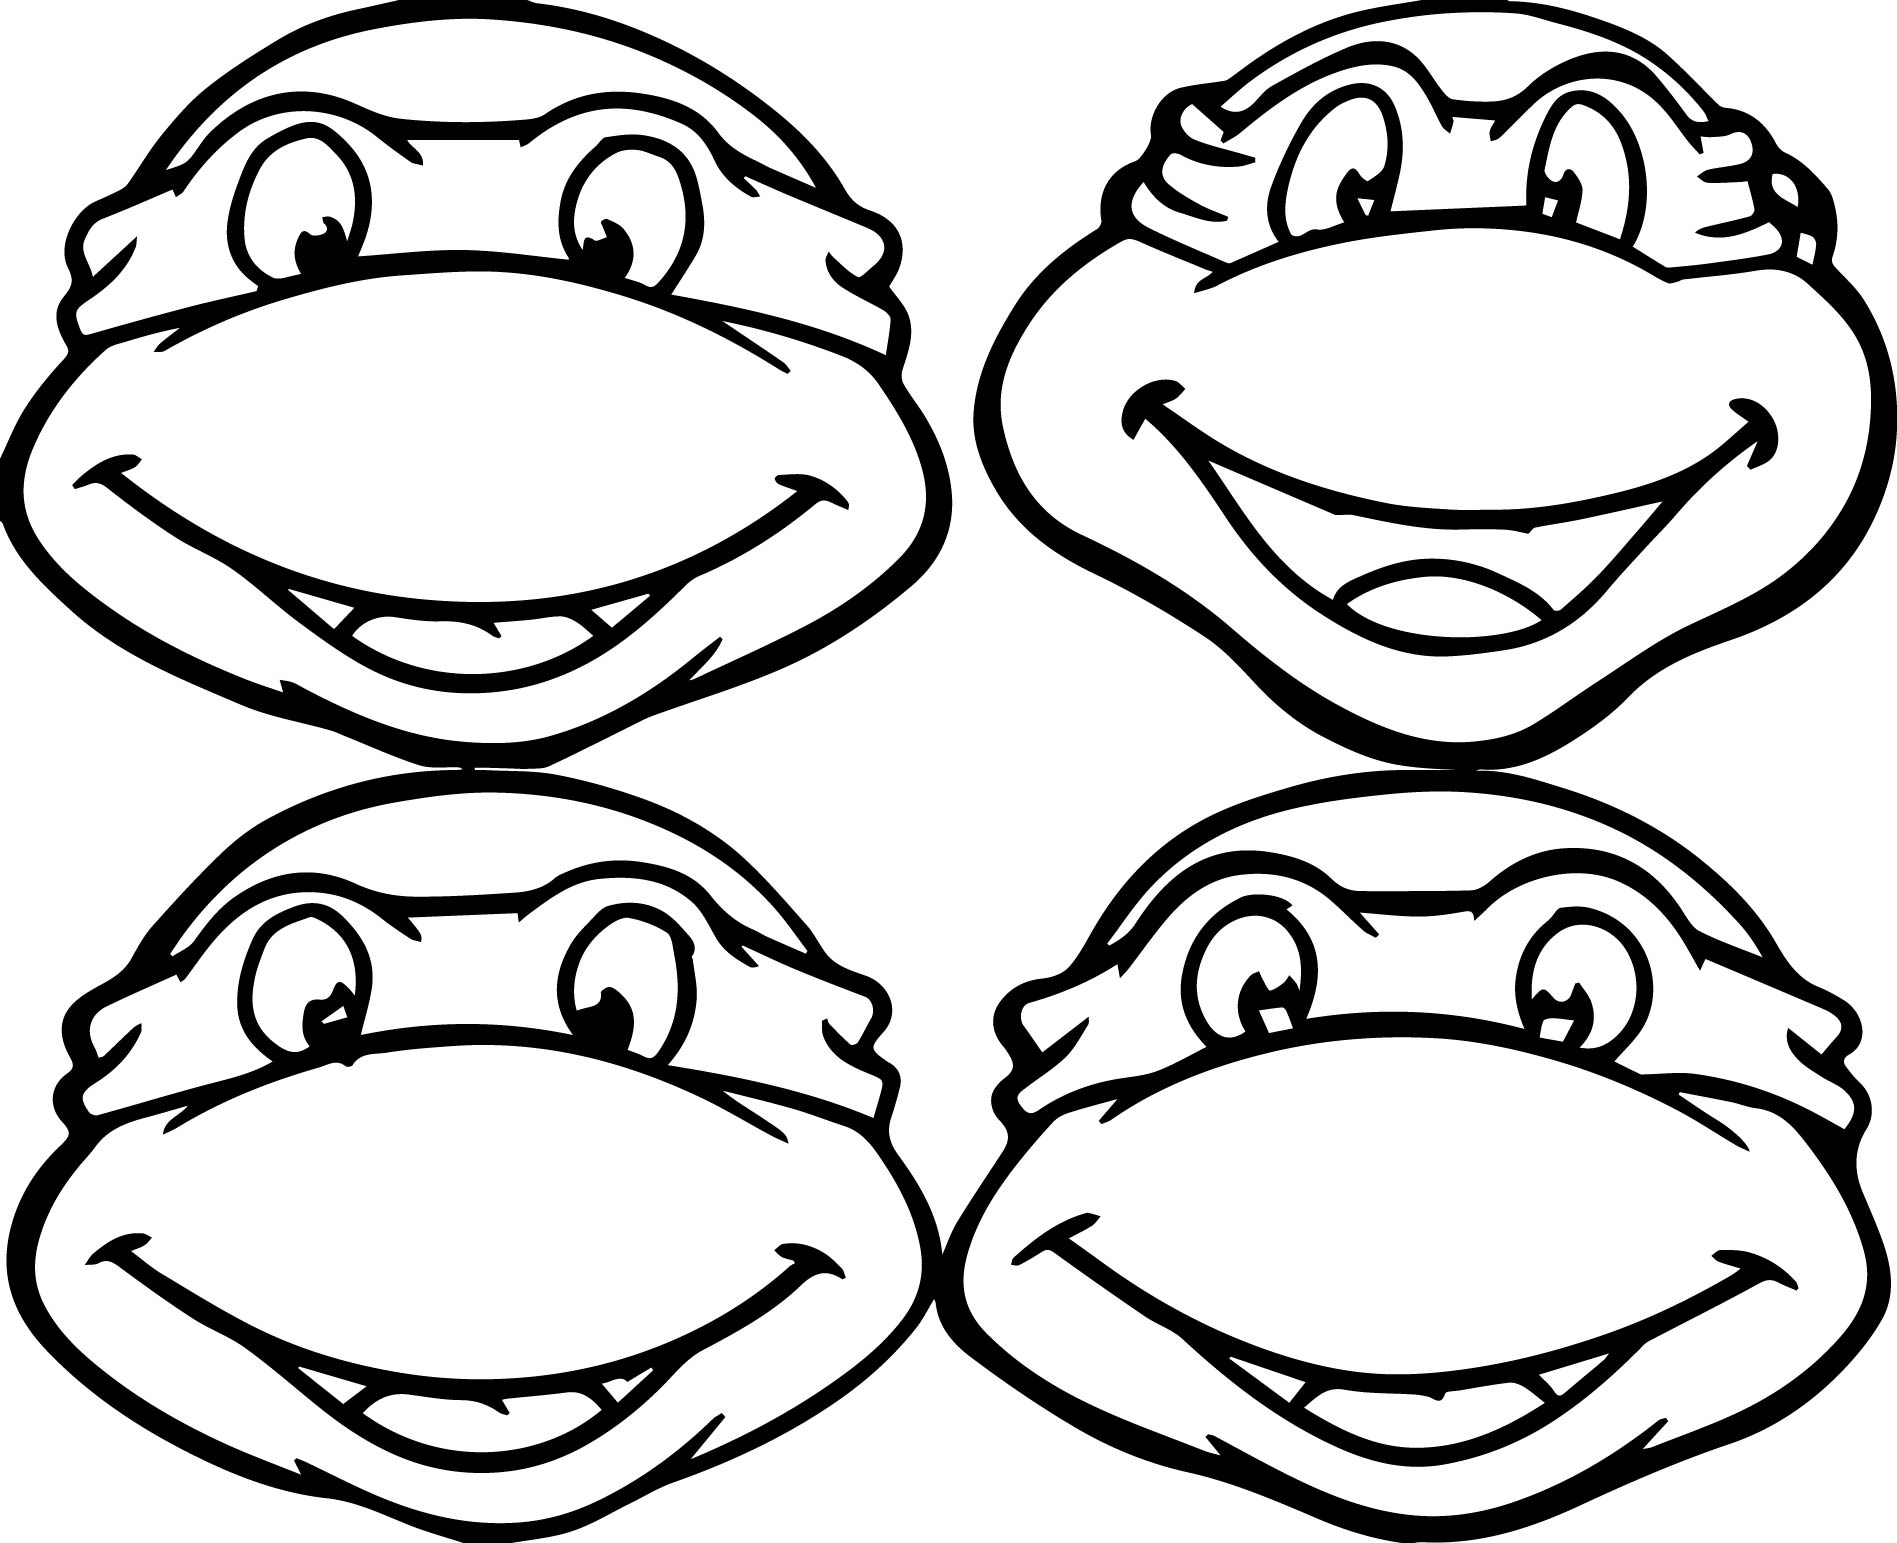 teenage mutant ninja turtles coloring pages | wecoloringpage - Ninja Turtle Pizza Coloring Pages